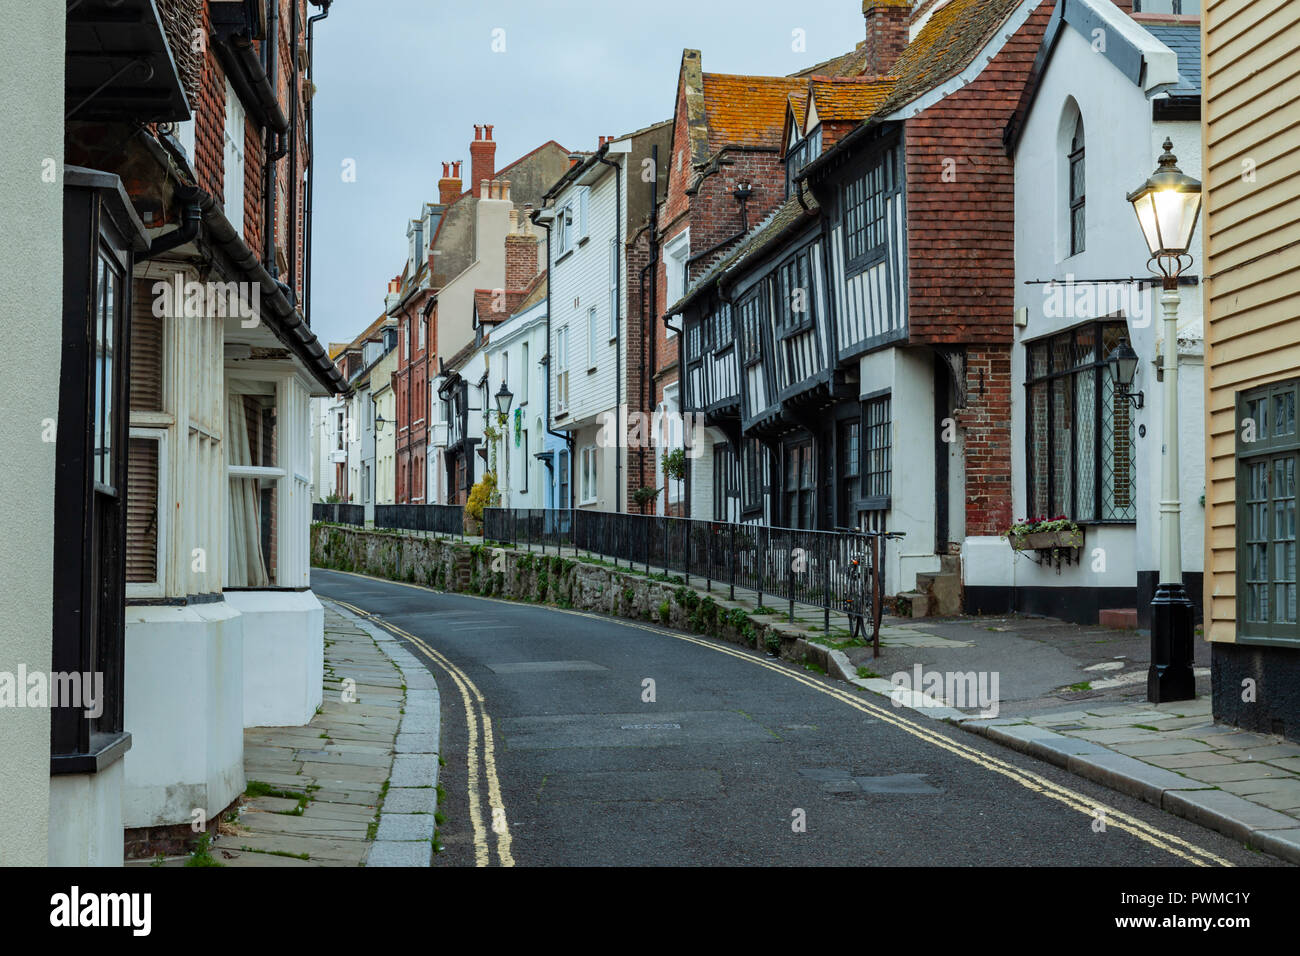 Evening in Hastings old town, East Sussex, England. - Stock Image